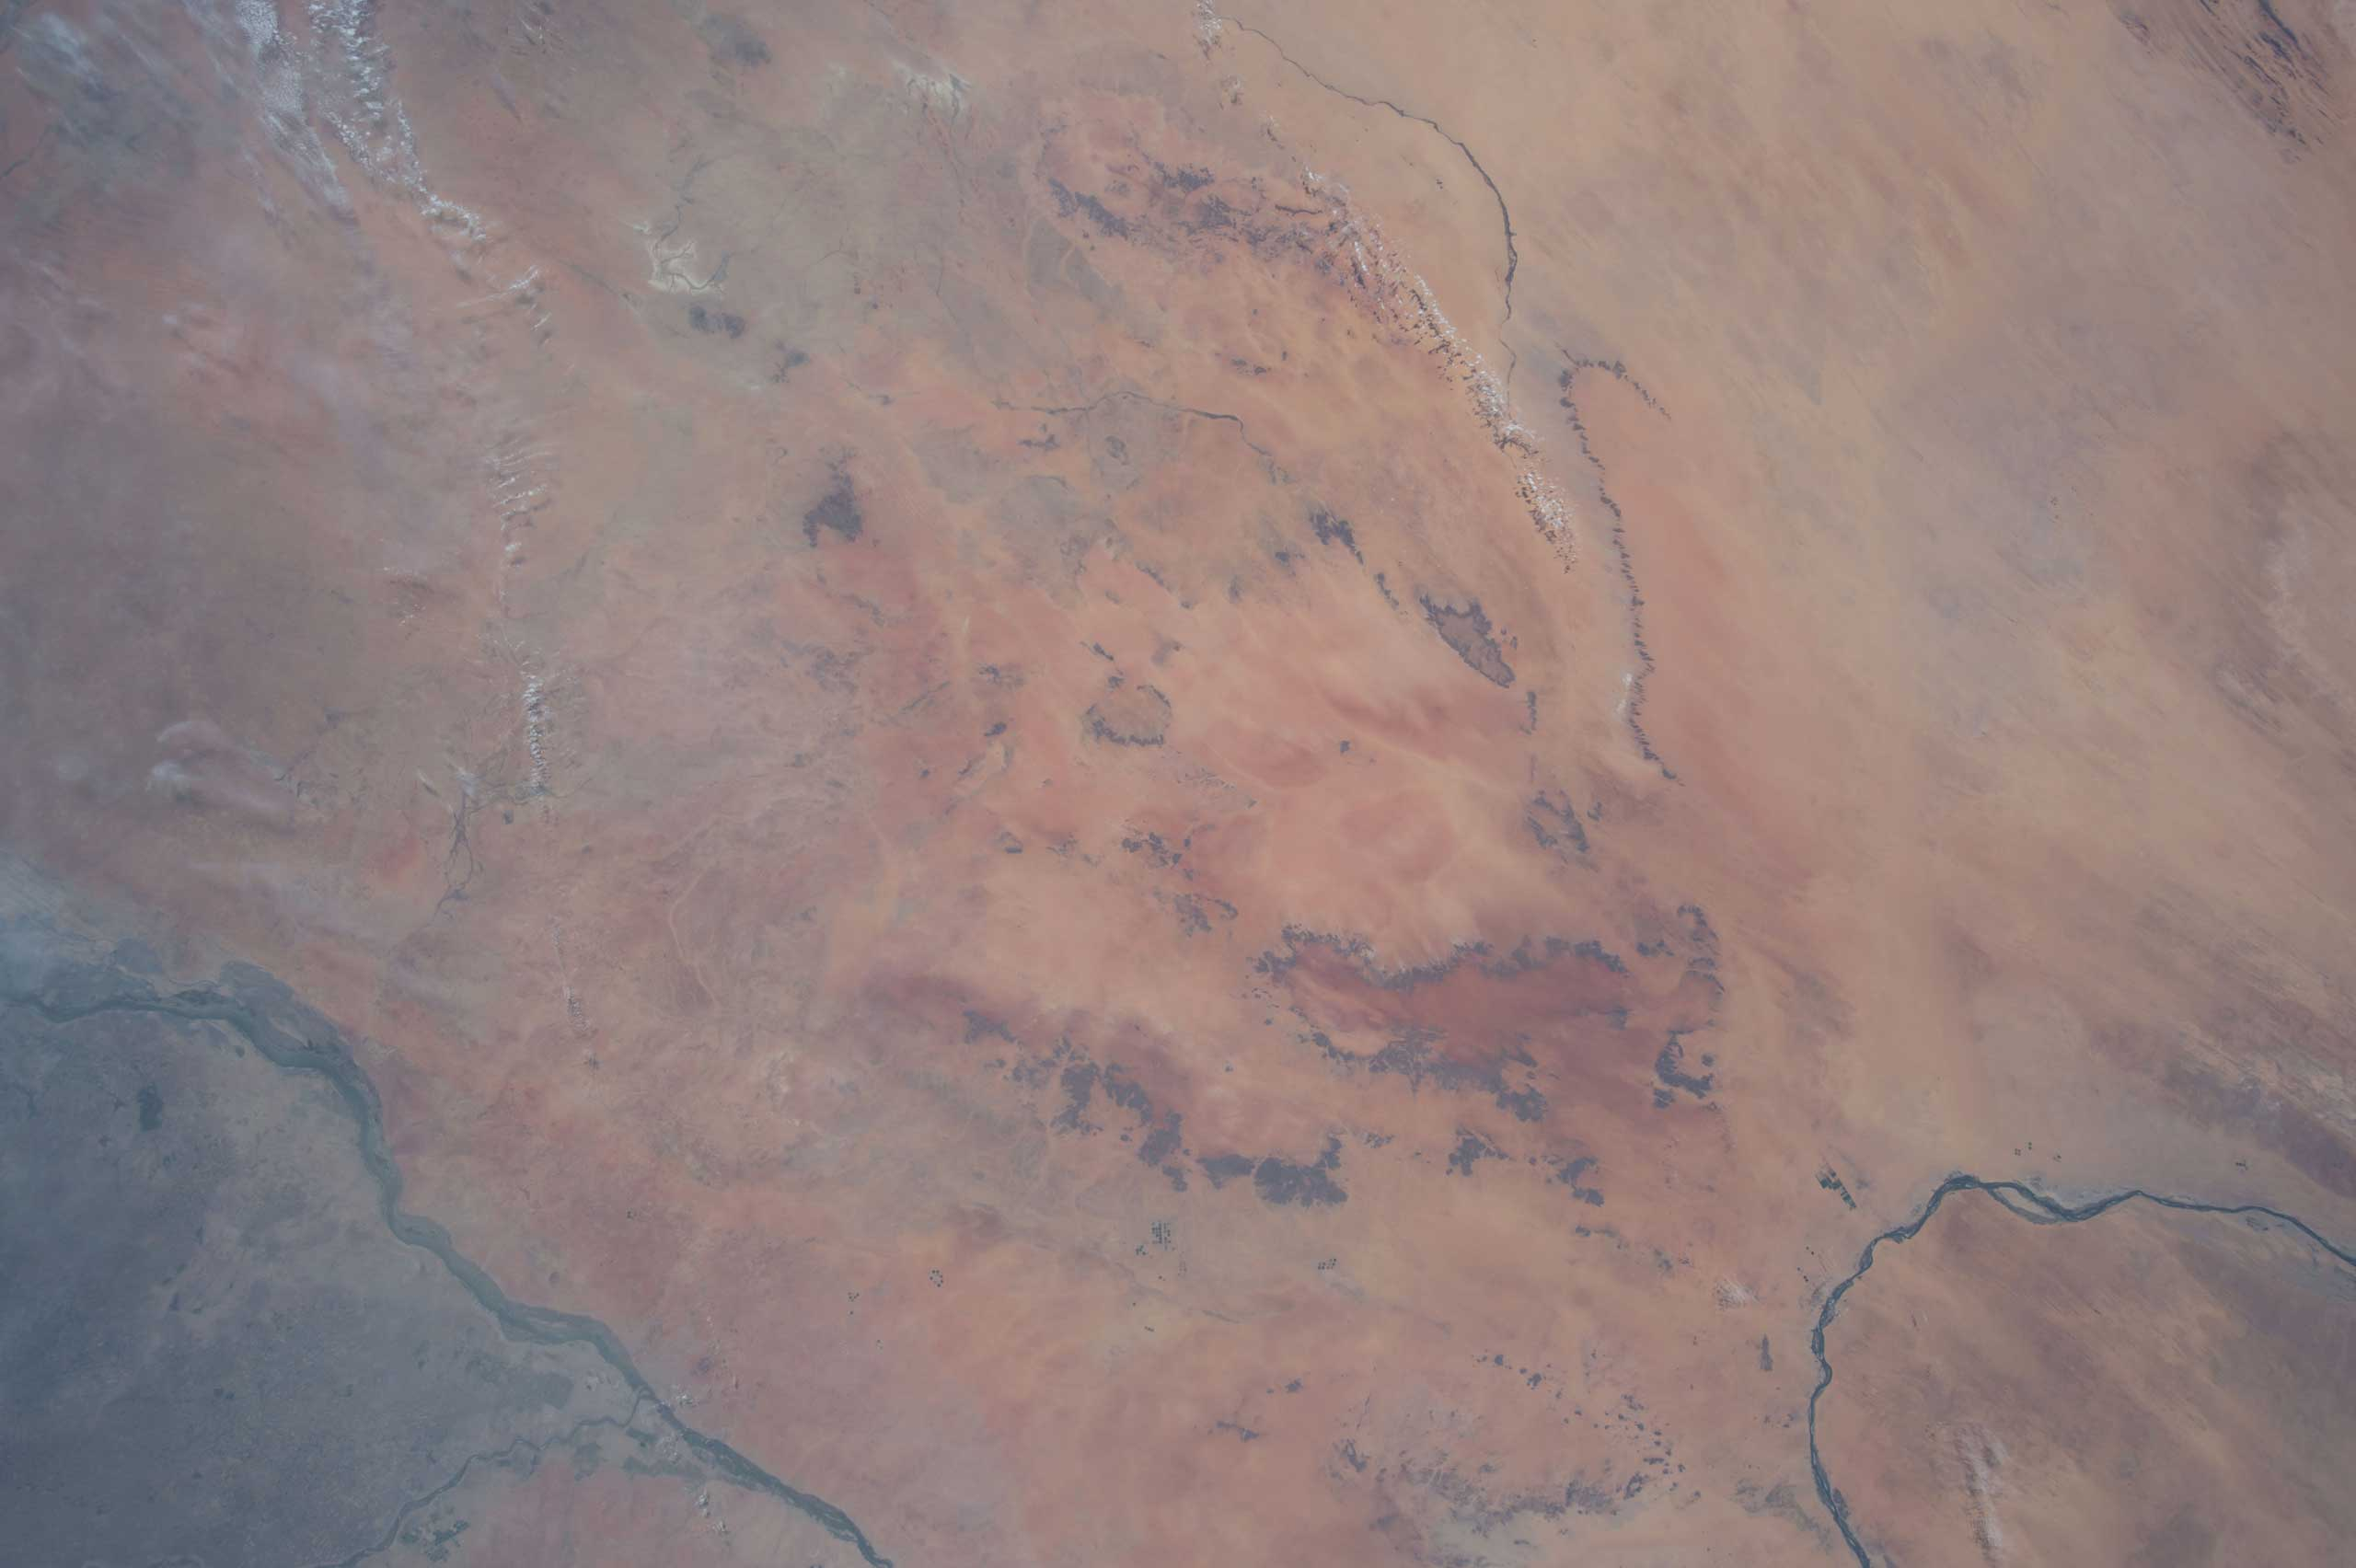 NASA astronaut Terry Virts onboard the International Space Station tweeted this deep beige and red desert image in Africa on Apr. 16, 2015. Terry's comments that accompanied the image were:  Beautiful colors in the northern desert of #Africa .